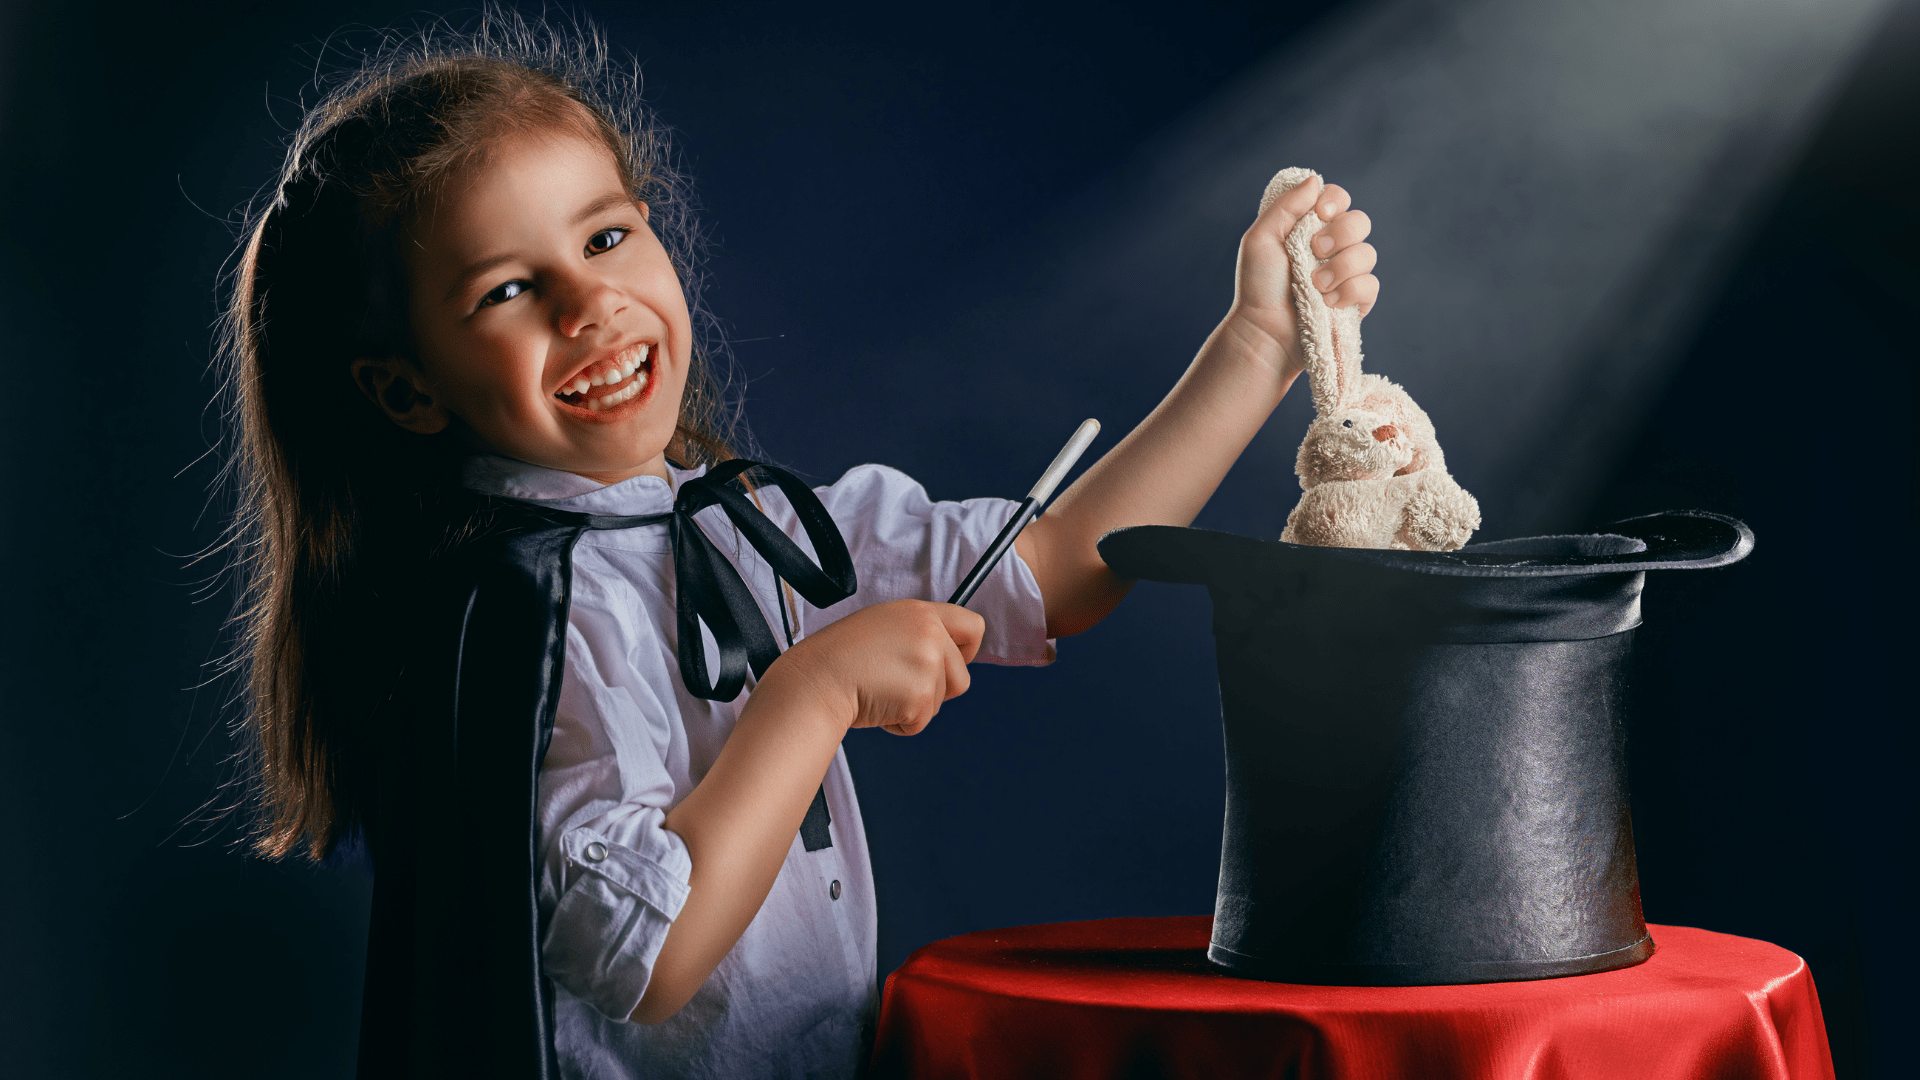 Why Virtual Magic is best for Kids